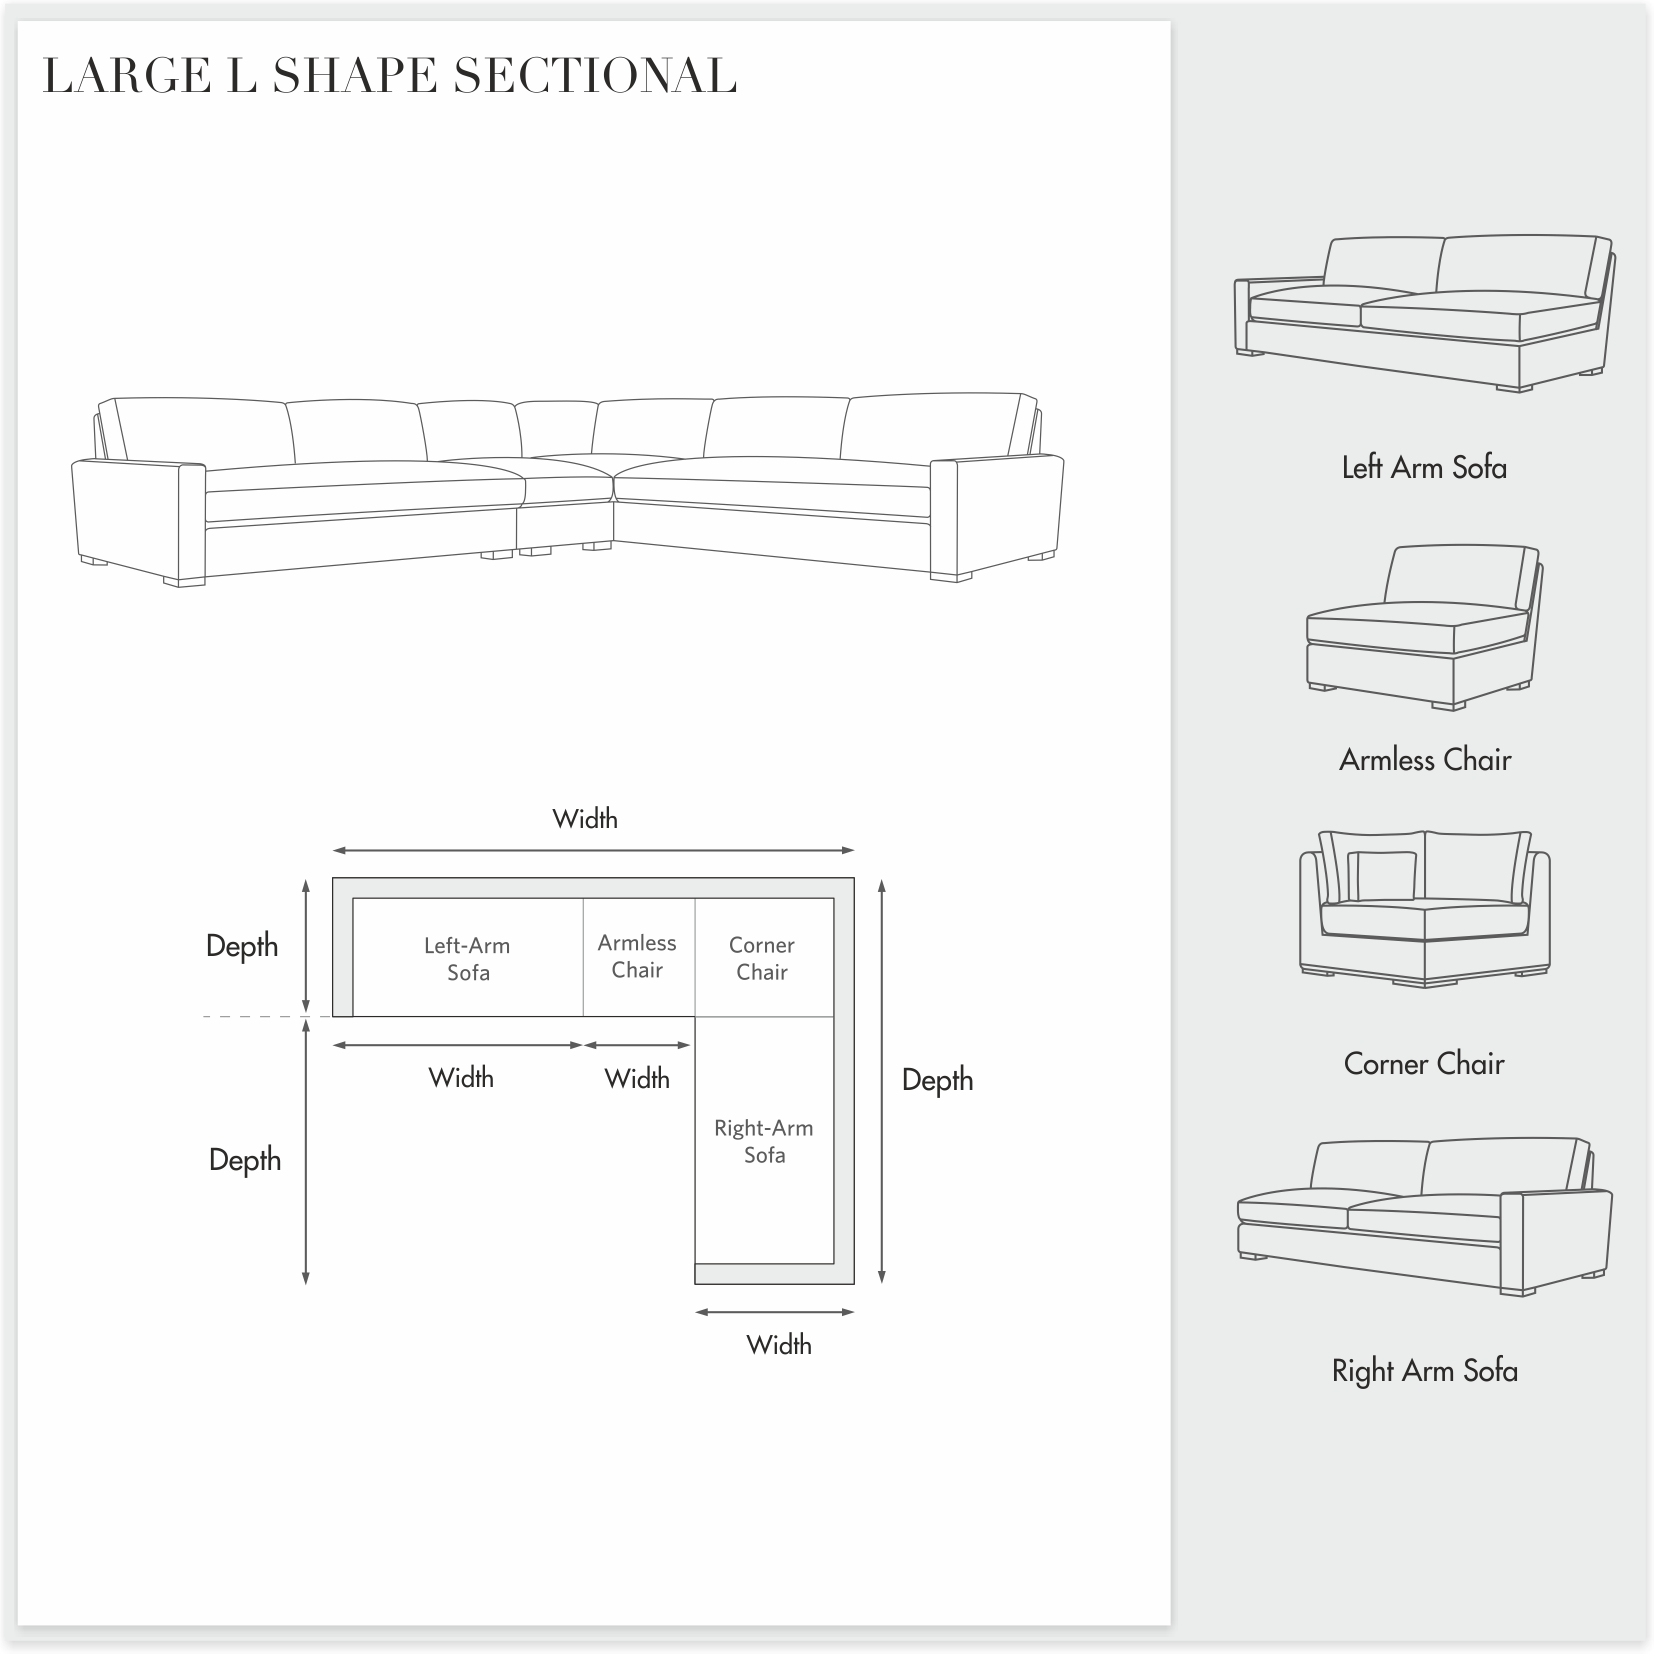 Manor Leather - Large L Shape Sectional